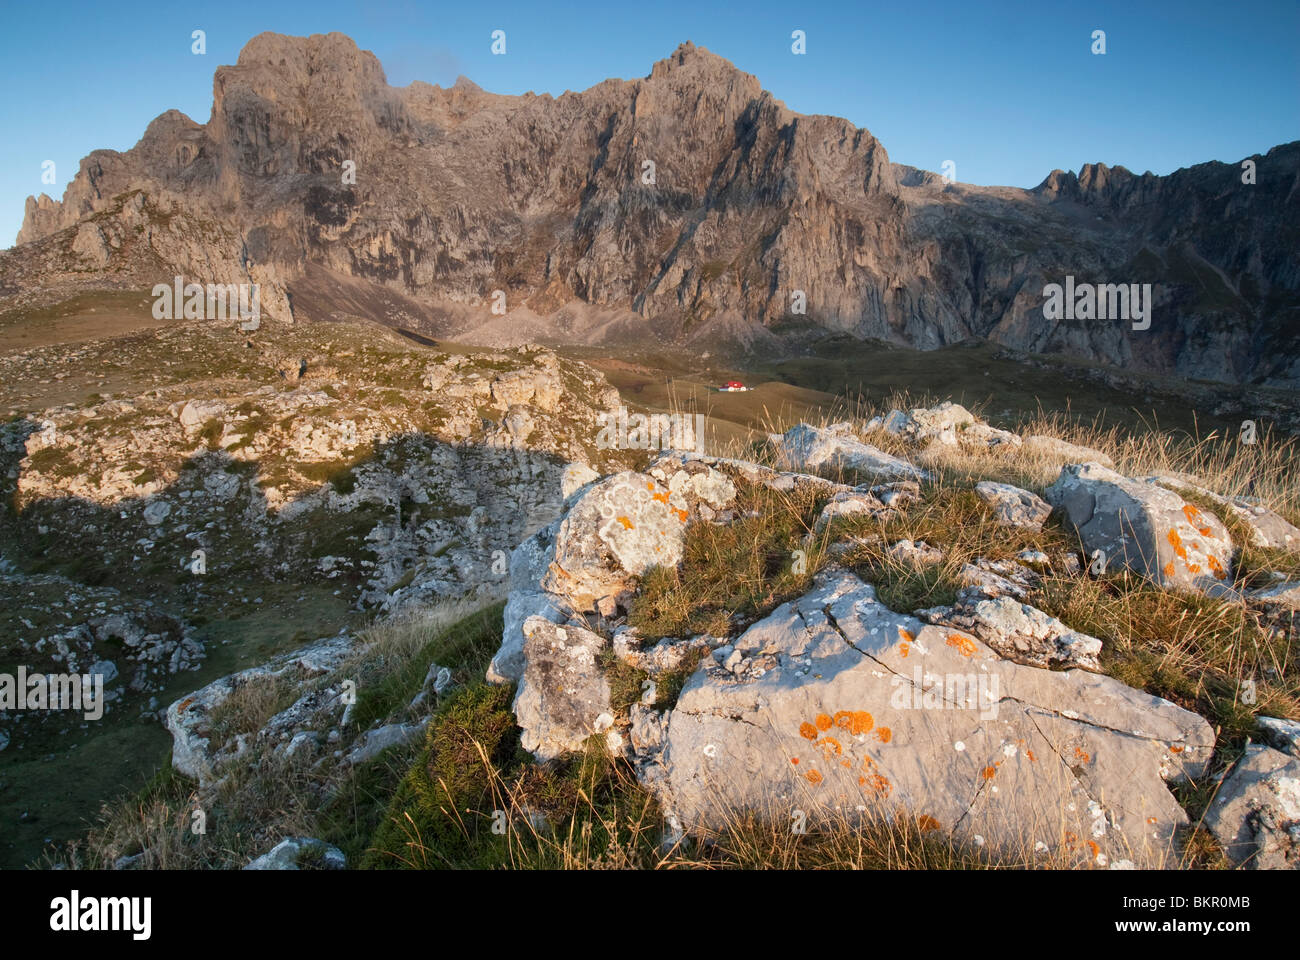 Views of the peaks above the Aliva valley, Picos de Europa, Northern Spain - Stock Image